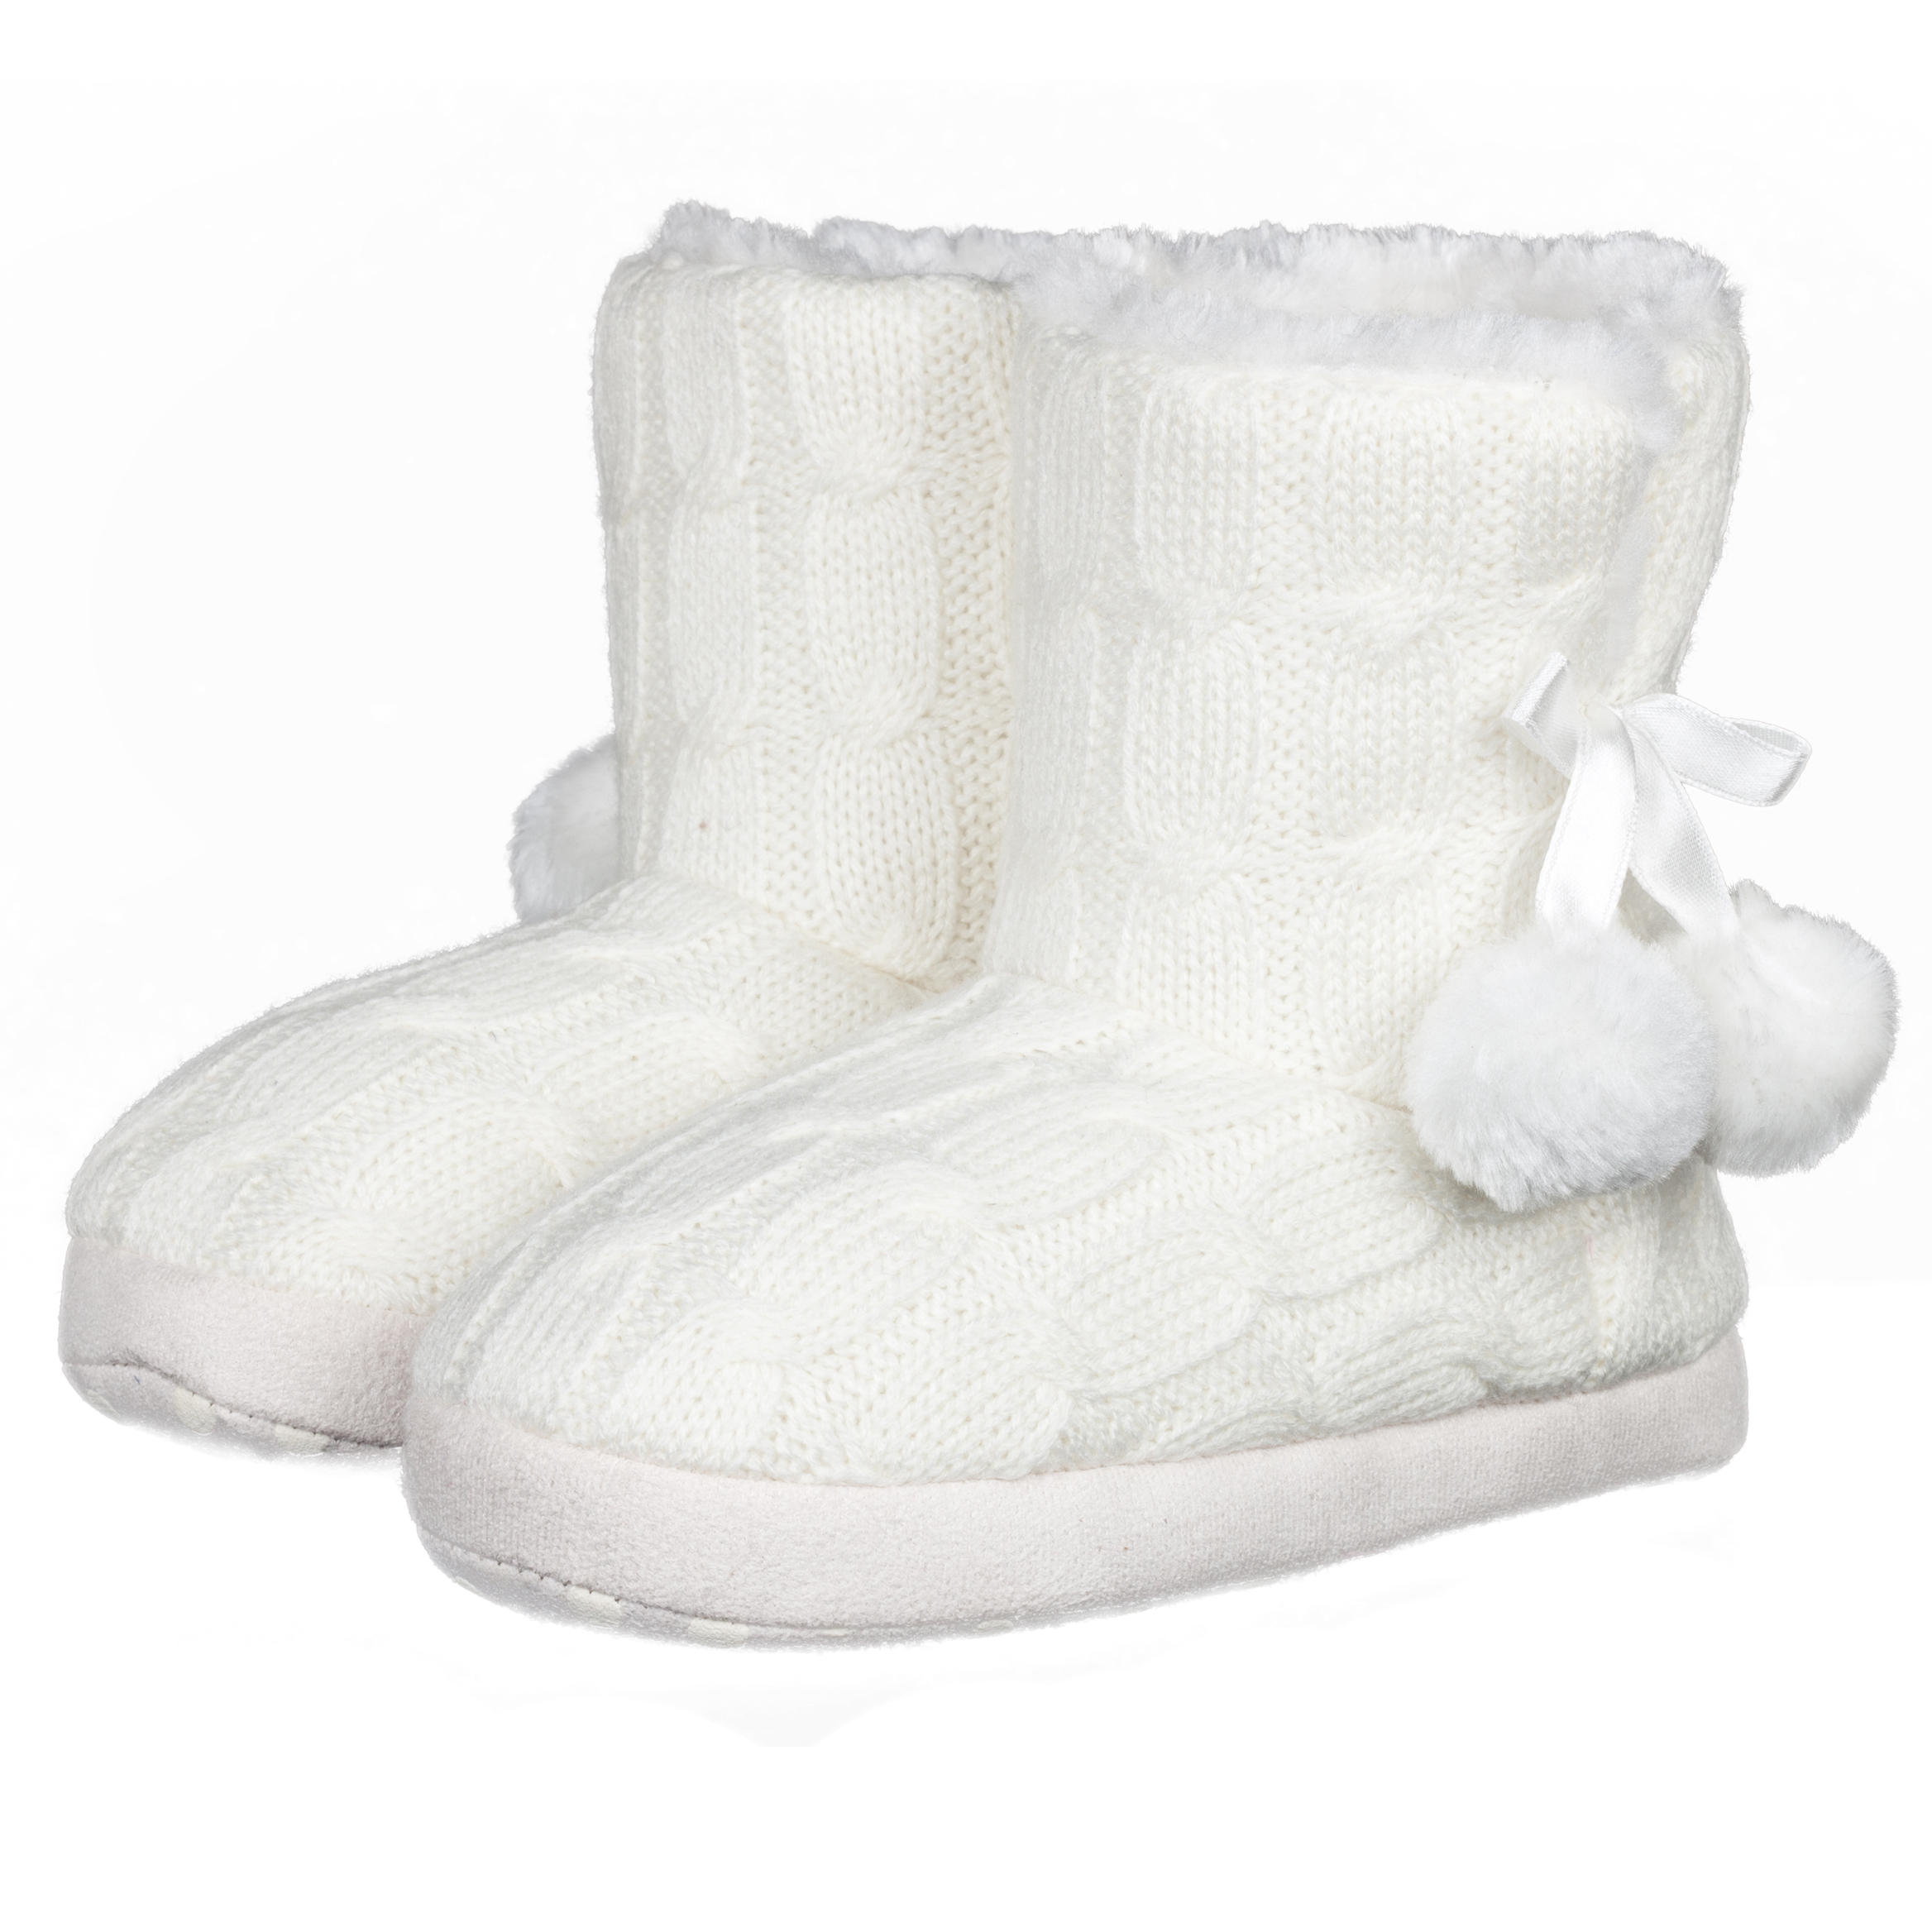 Sunderland Ella Boot Slippers - Cream - Girls Cream